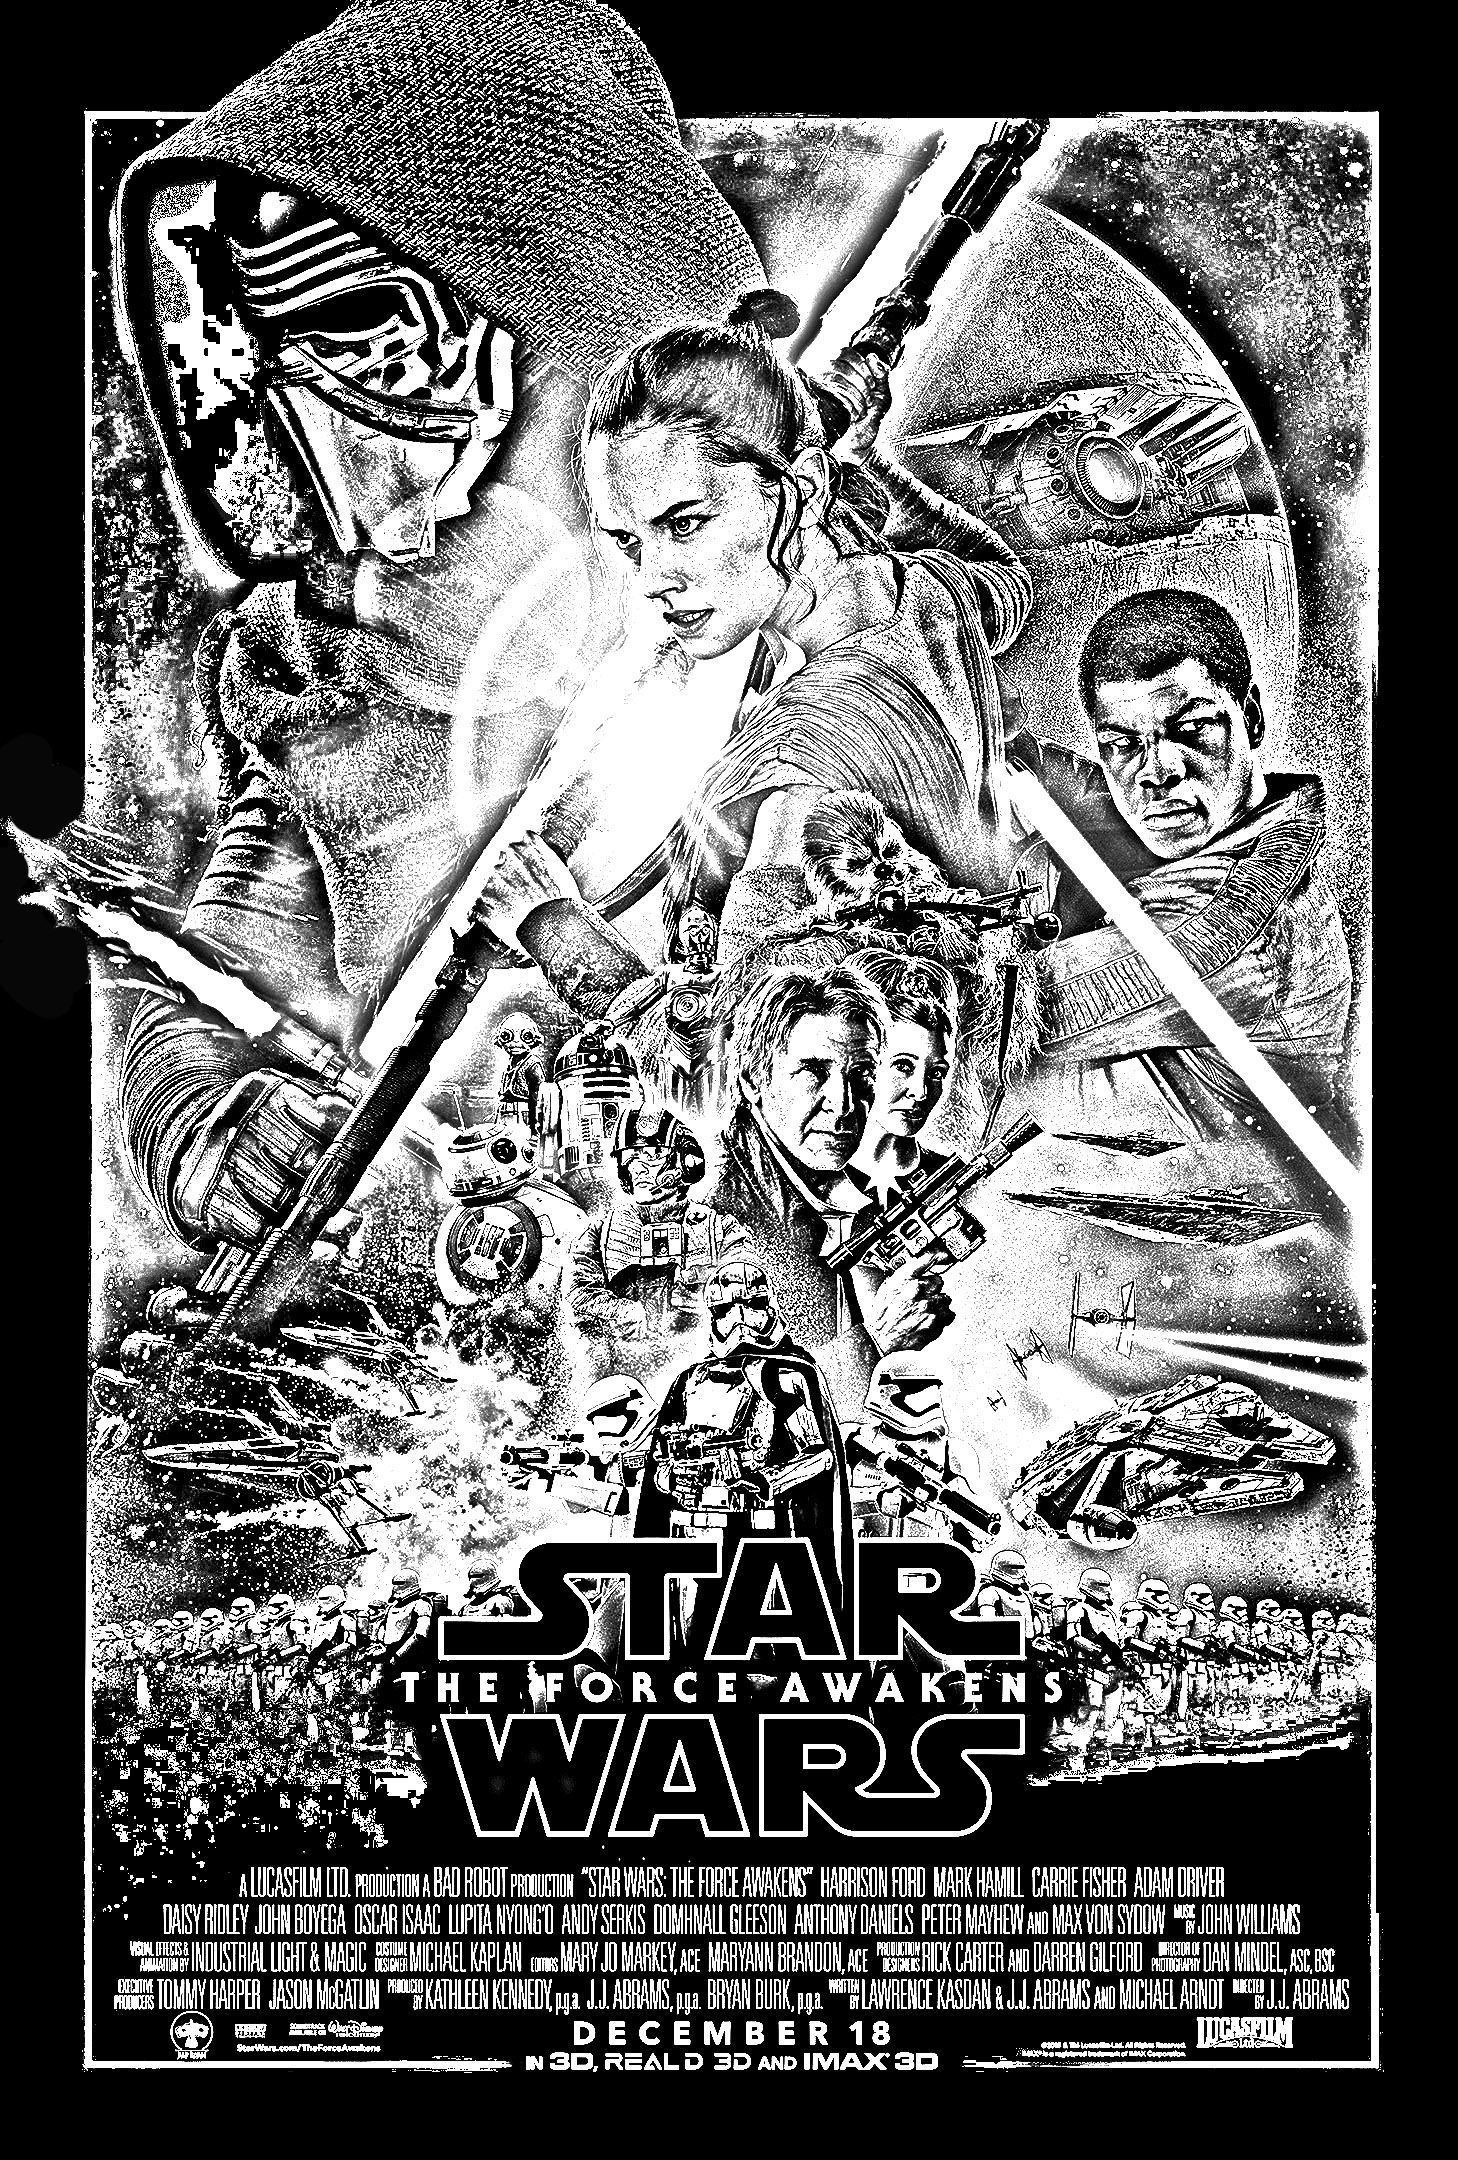 colouring pages for adults star wars free coloring page coloring movie star wars episode 4 a wars pages colouring adults star for